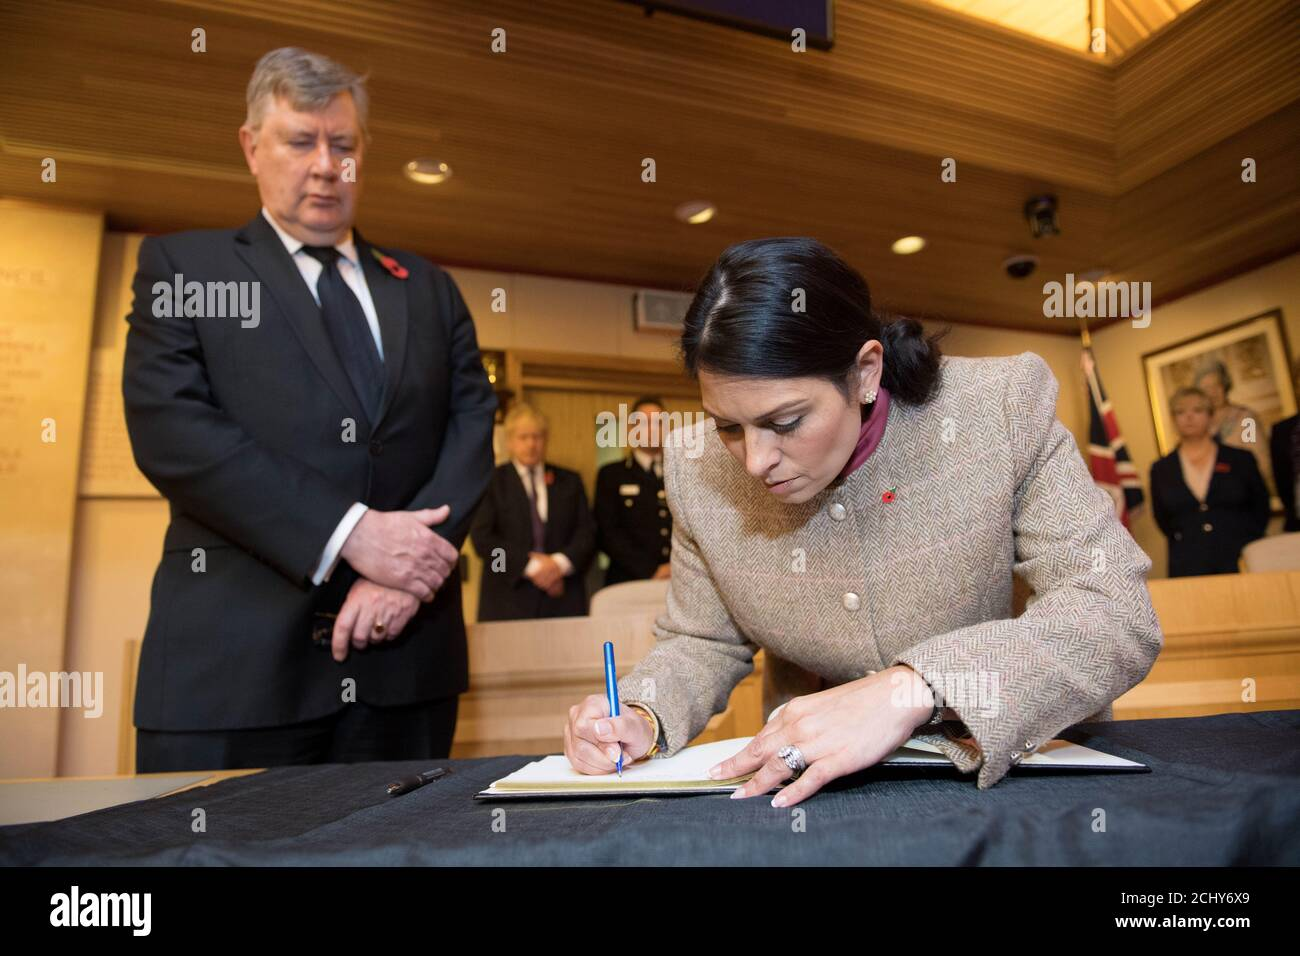 Home Secretary Priti Patel signs a book of condolence during a visit to Thurrock Council Offices in Grays, Britain, October 28, 2019. Stefan Rousseau/Pool via REUTERS Stock Photo